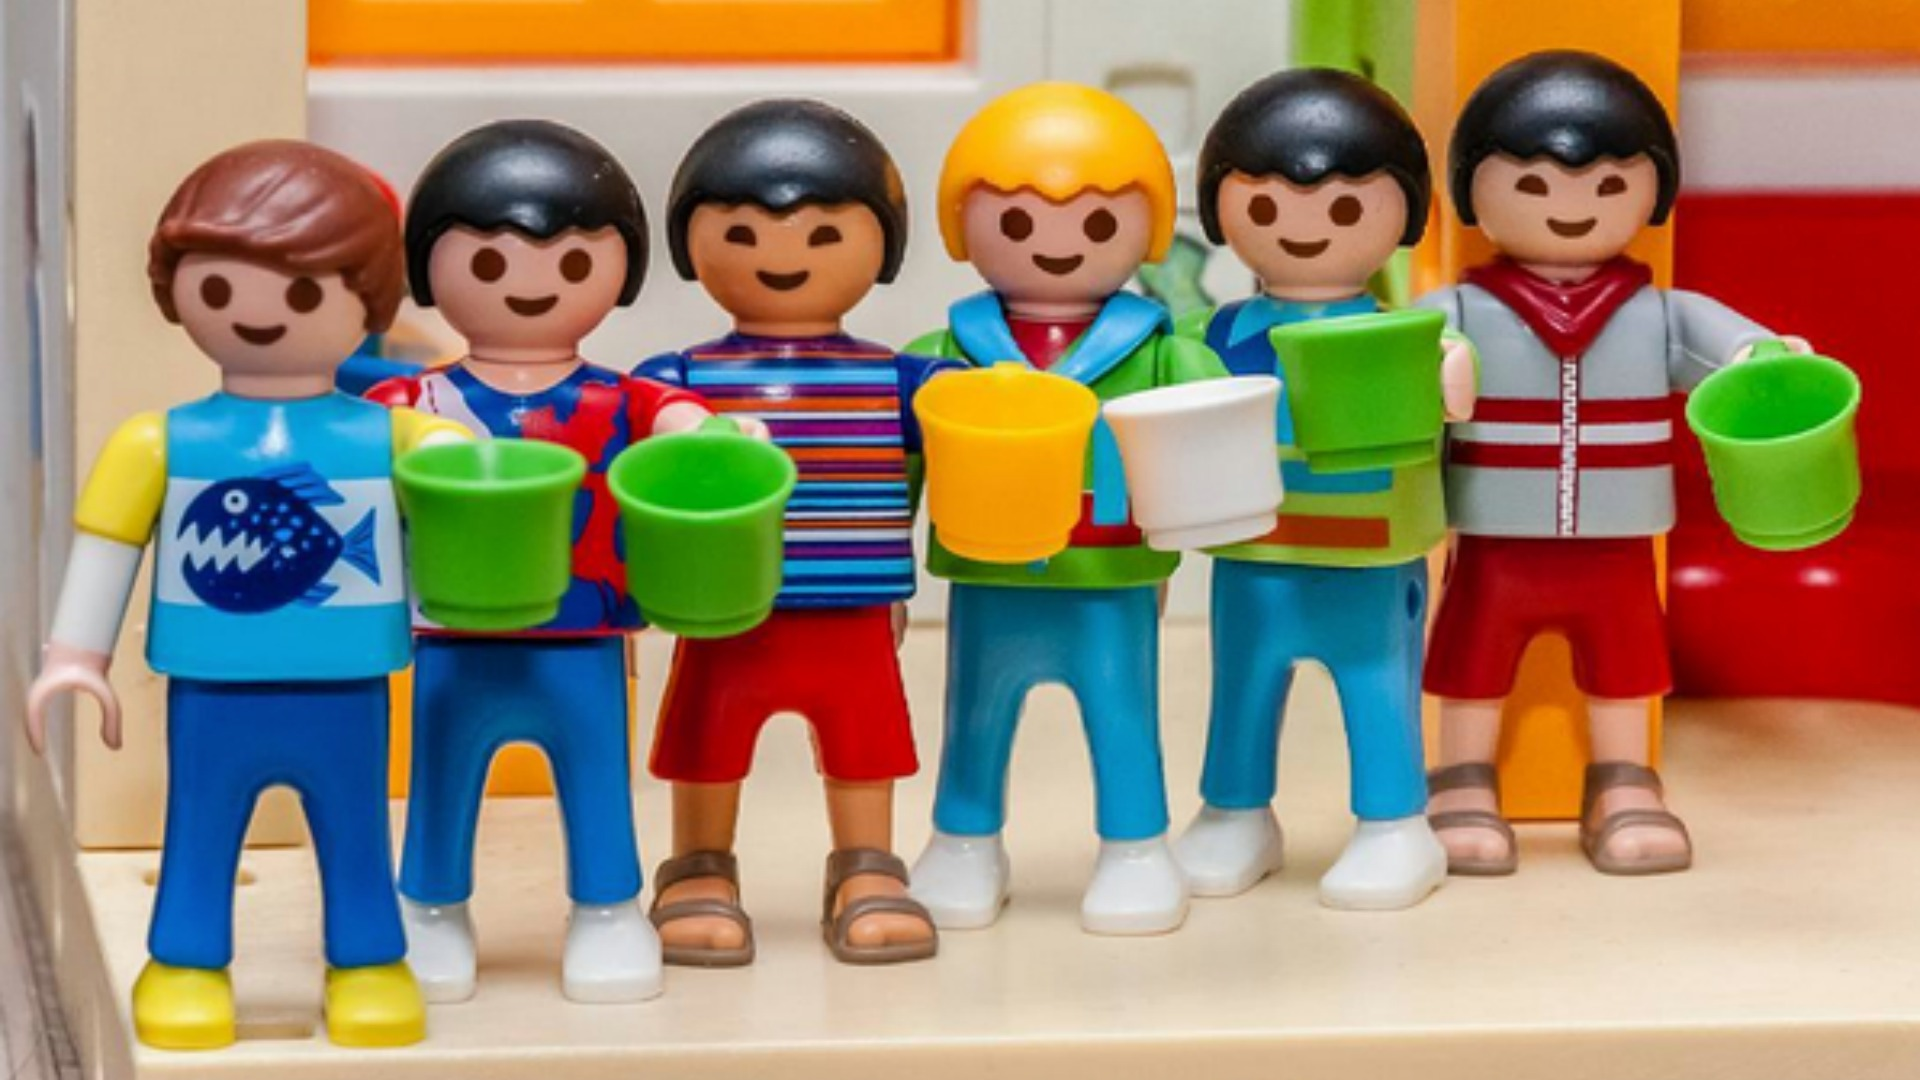 Playmobil y una fuerte estrategia de video